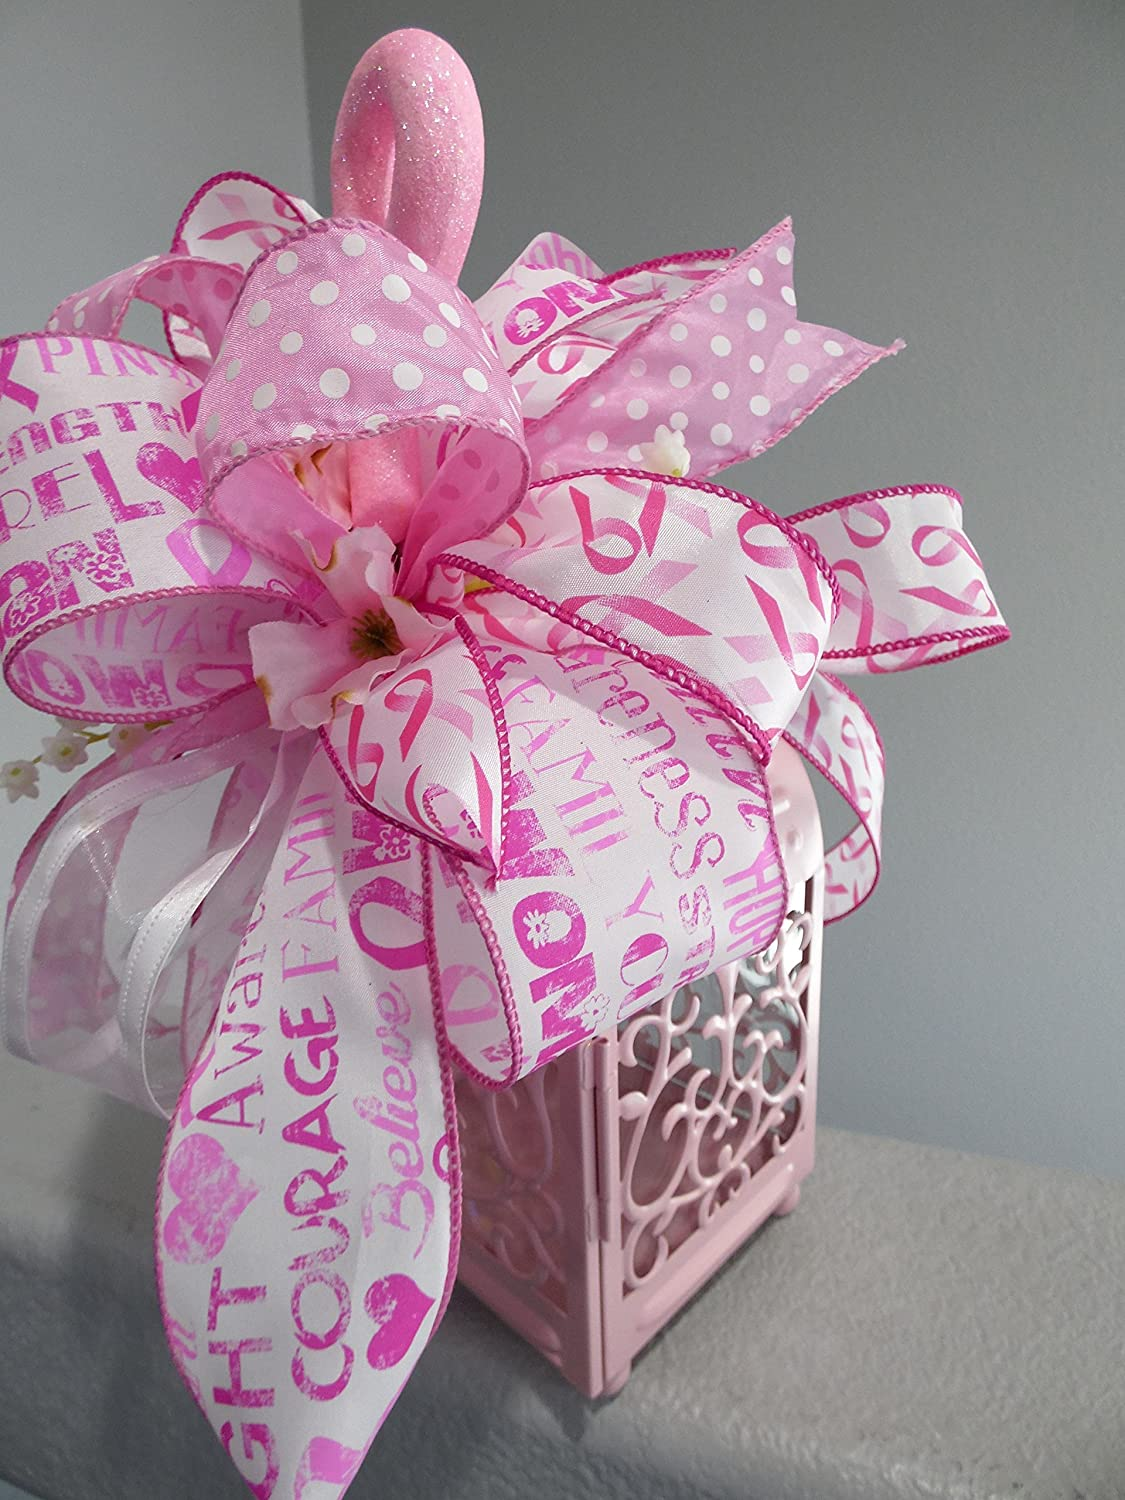 Amazon.com: Breast Cancer Awareness Table Centerpiece, Breast Cancer ...